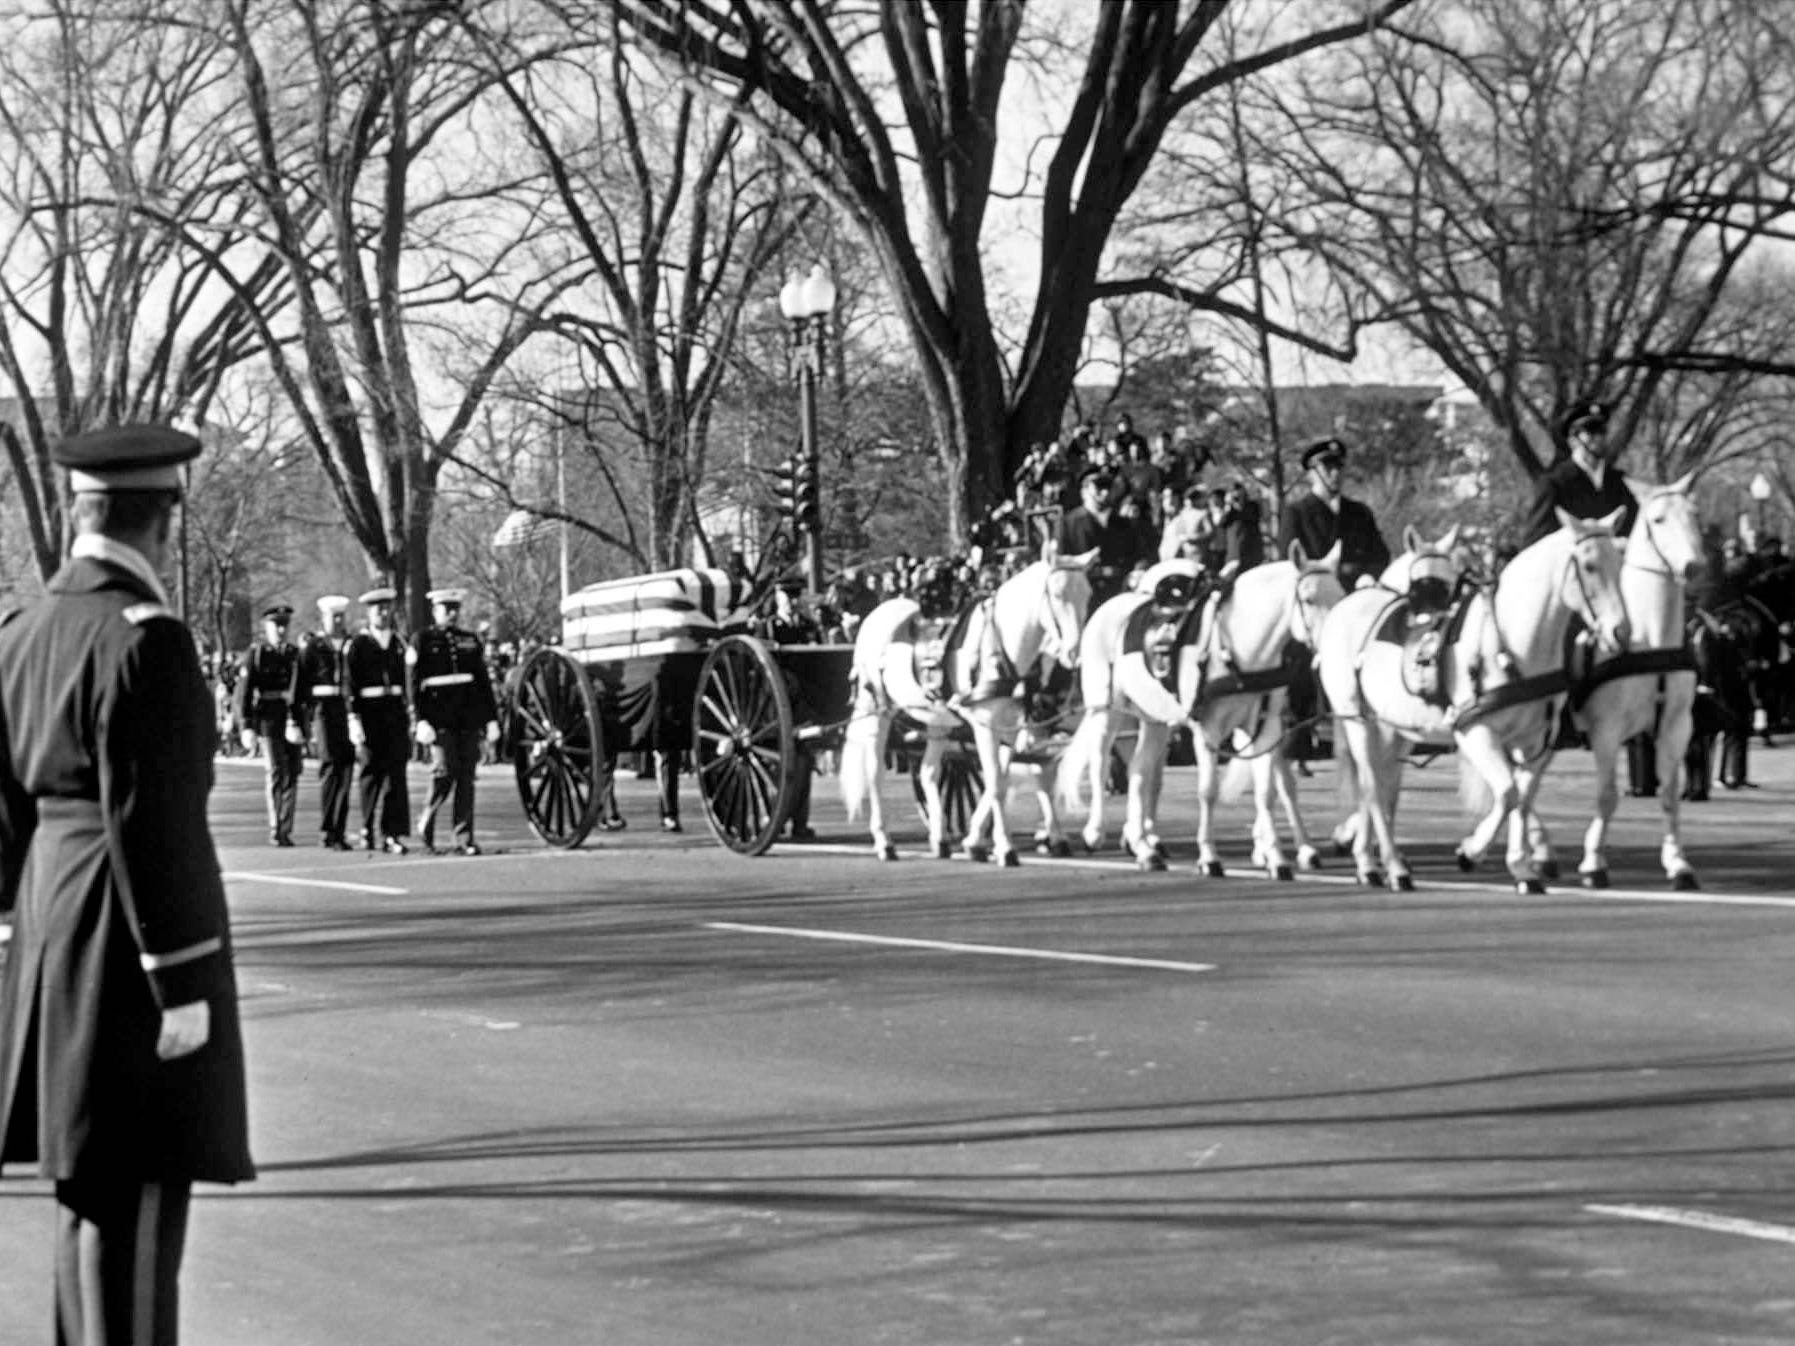 The horse-drawn caisson carrying the body of former President Lyndon B. Johnson moves down Constitution Avenue in Washington, Jan. 24, 1973, on the way to the Capitol.